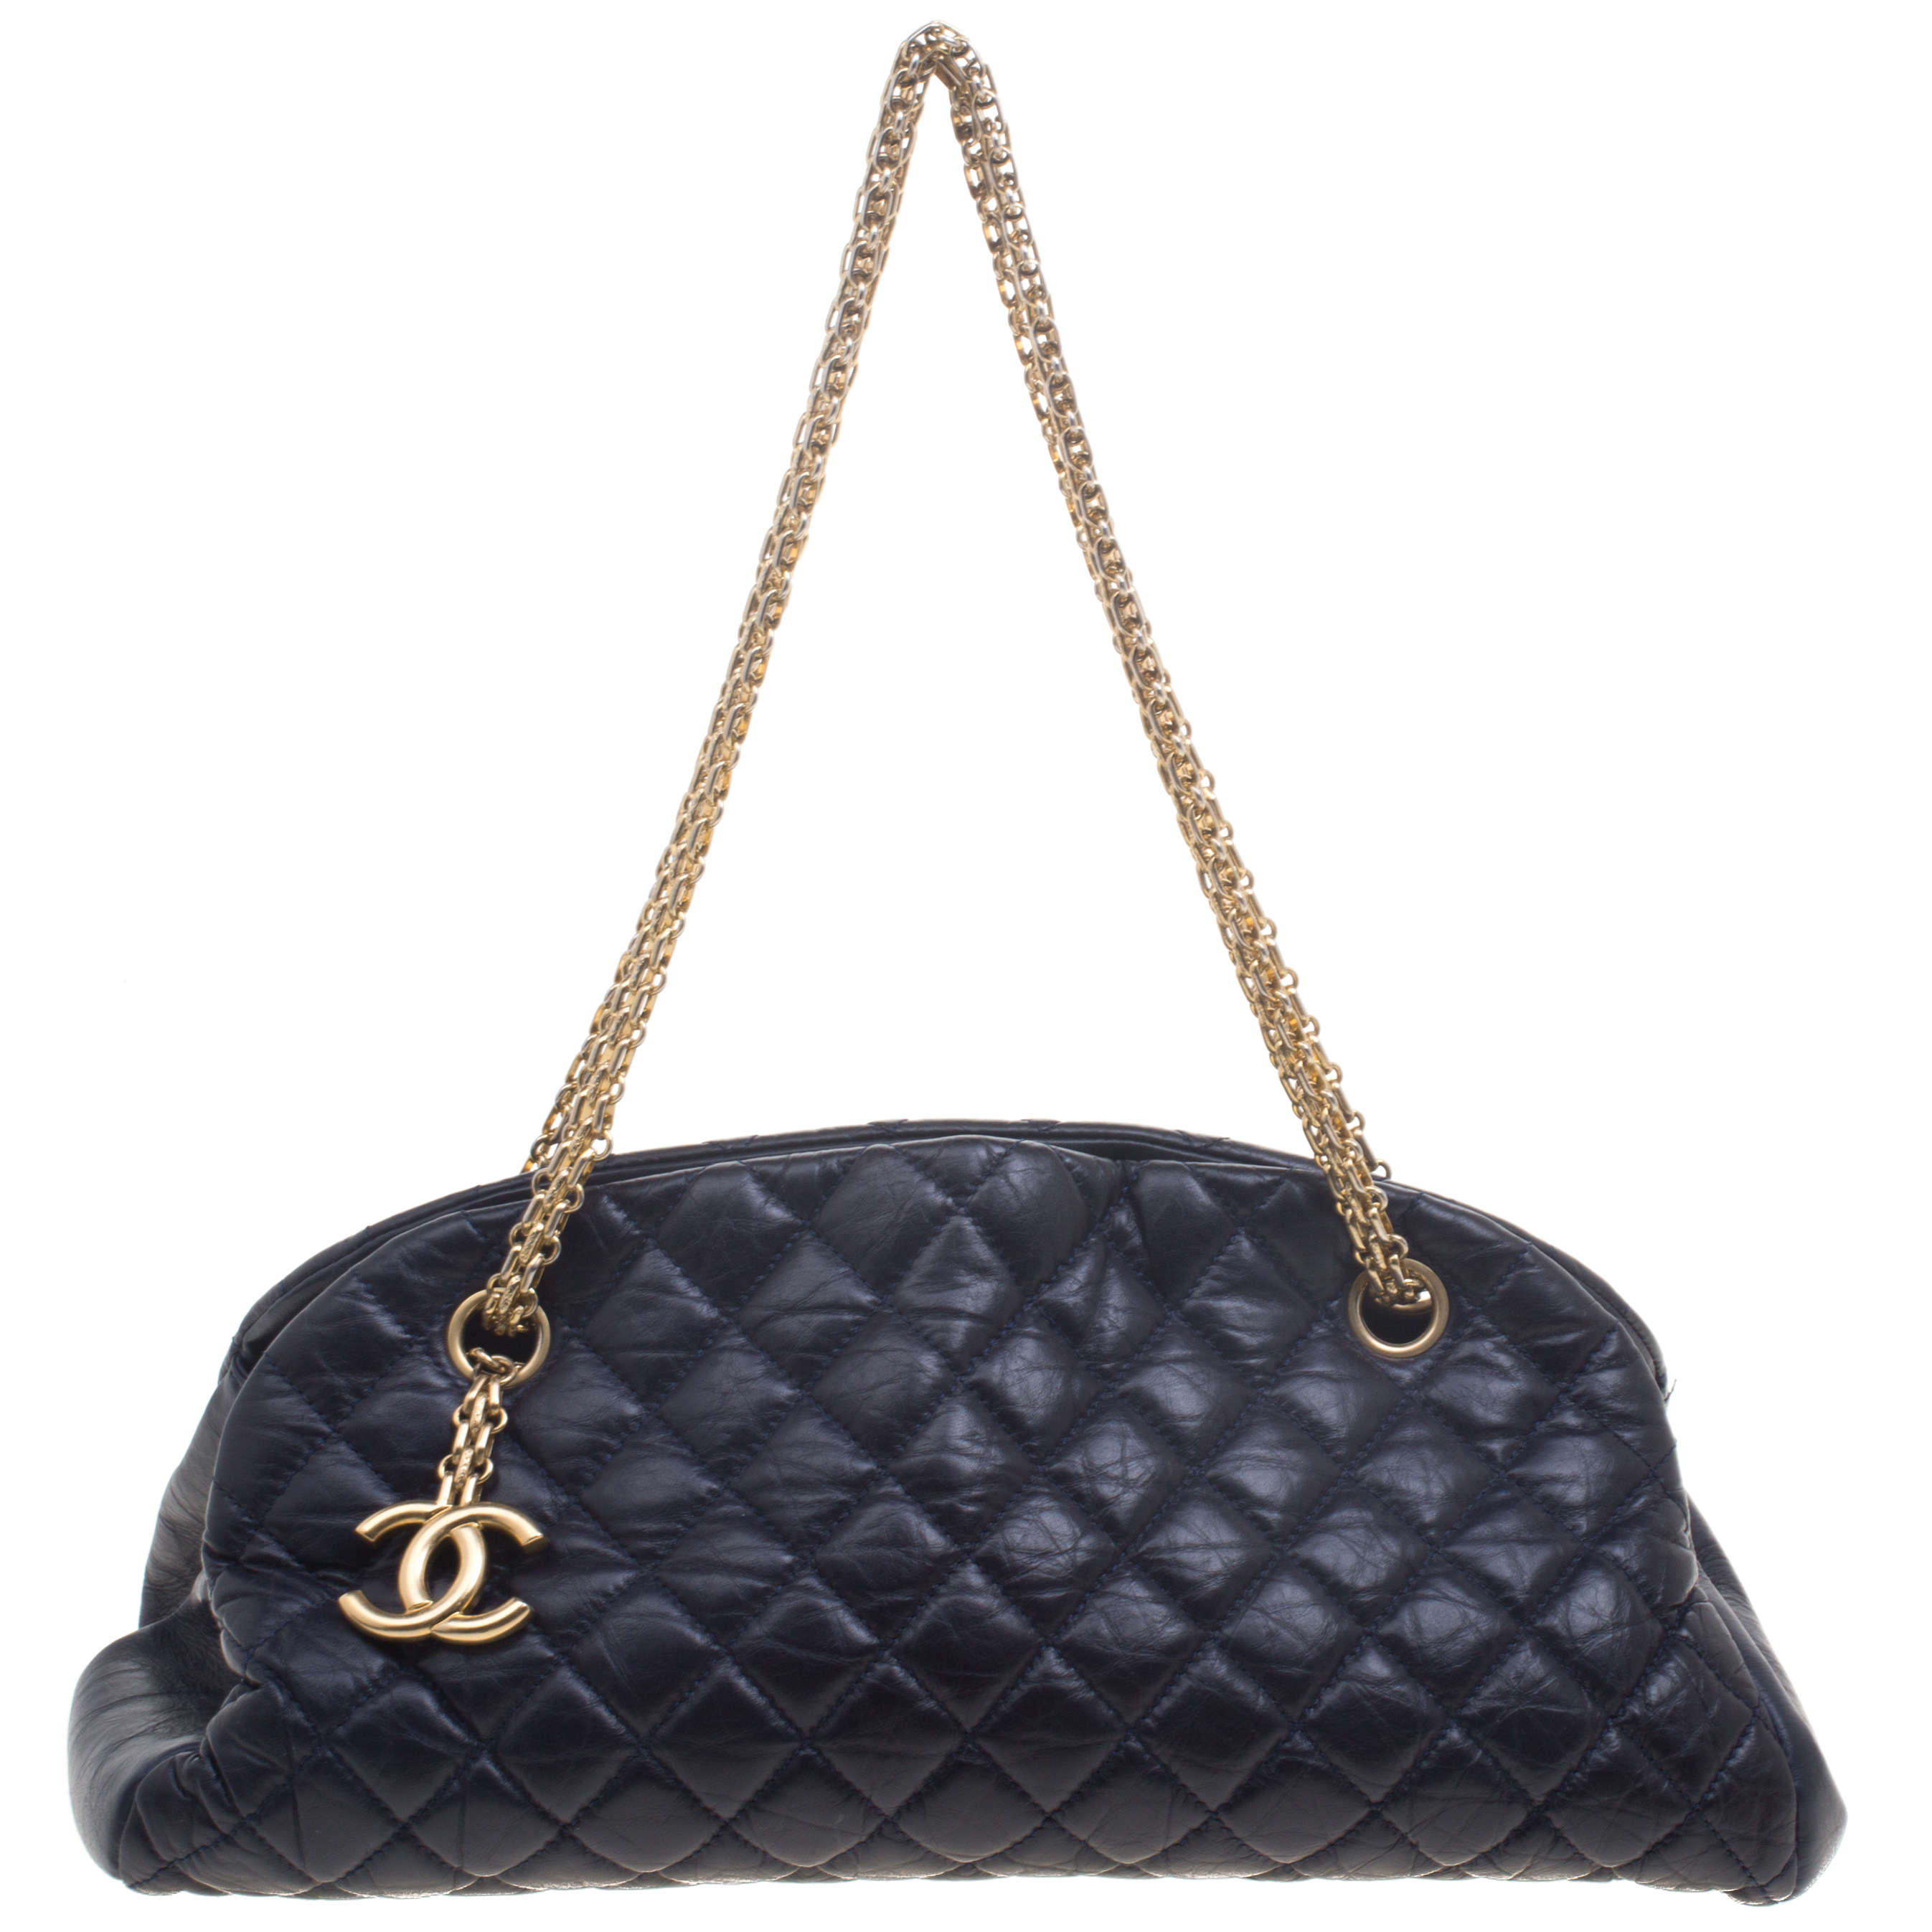 b716538ea49 Buy Chanel Navy Blue Quilted Leather Medium Just Mademoiselle ...